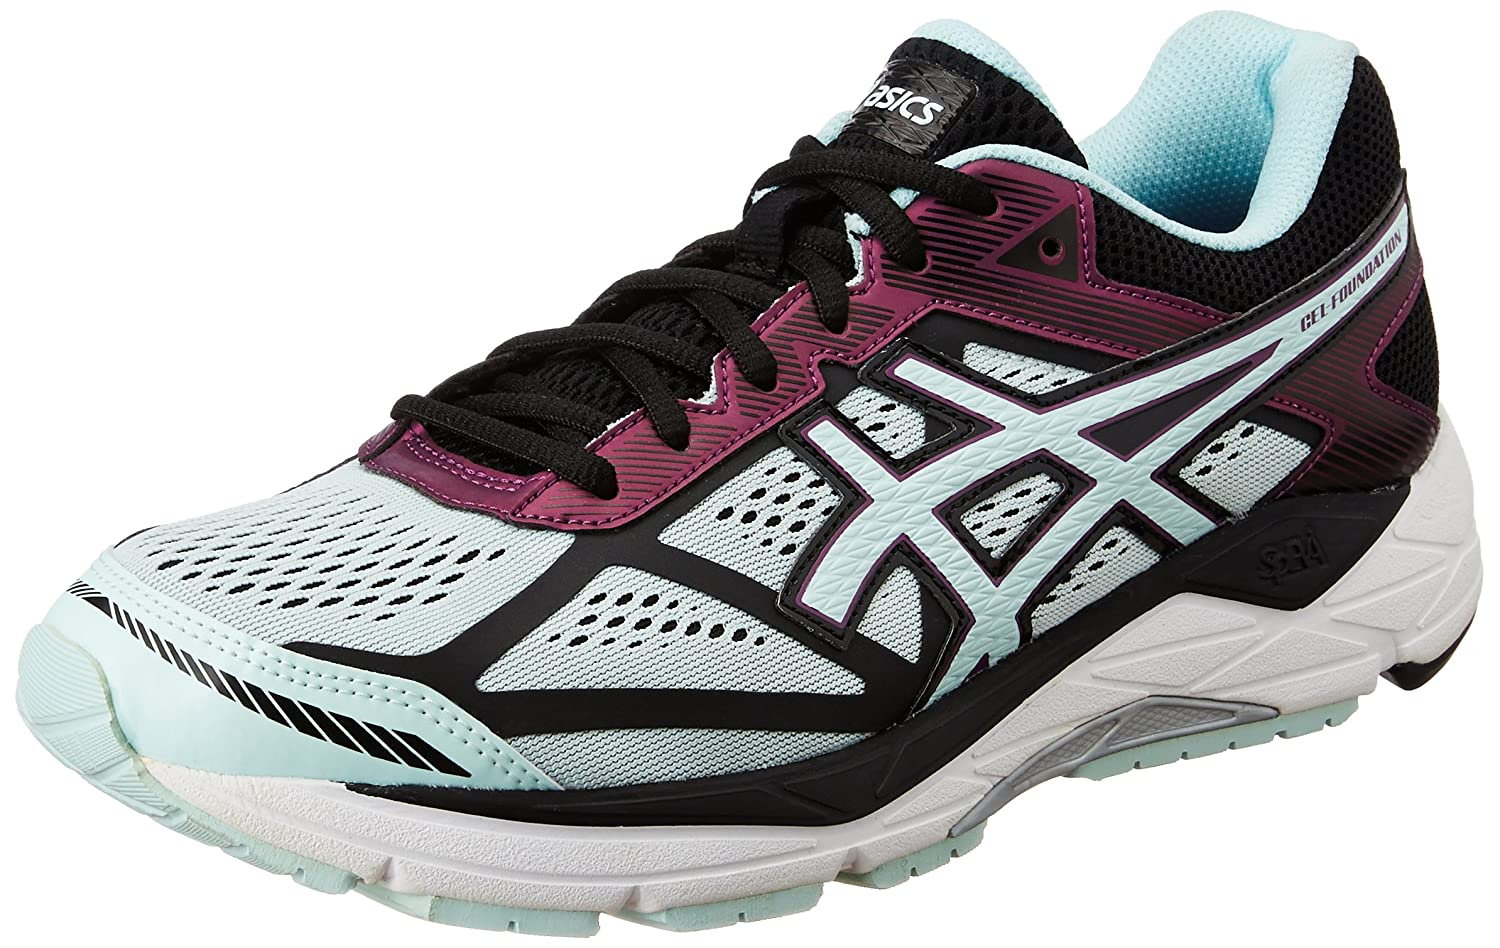 1d6a50a4f7 Asics Women's Gel-Foundation 12 (D) Running Shoes: Amazon.in: Shoes &  Handbags